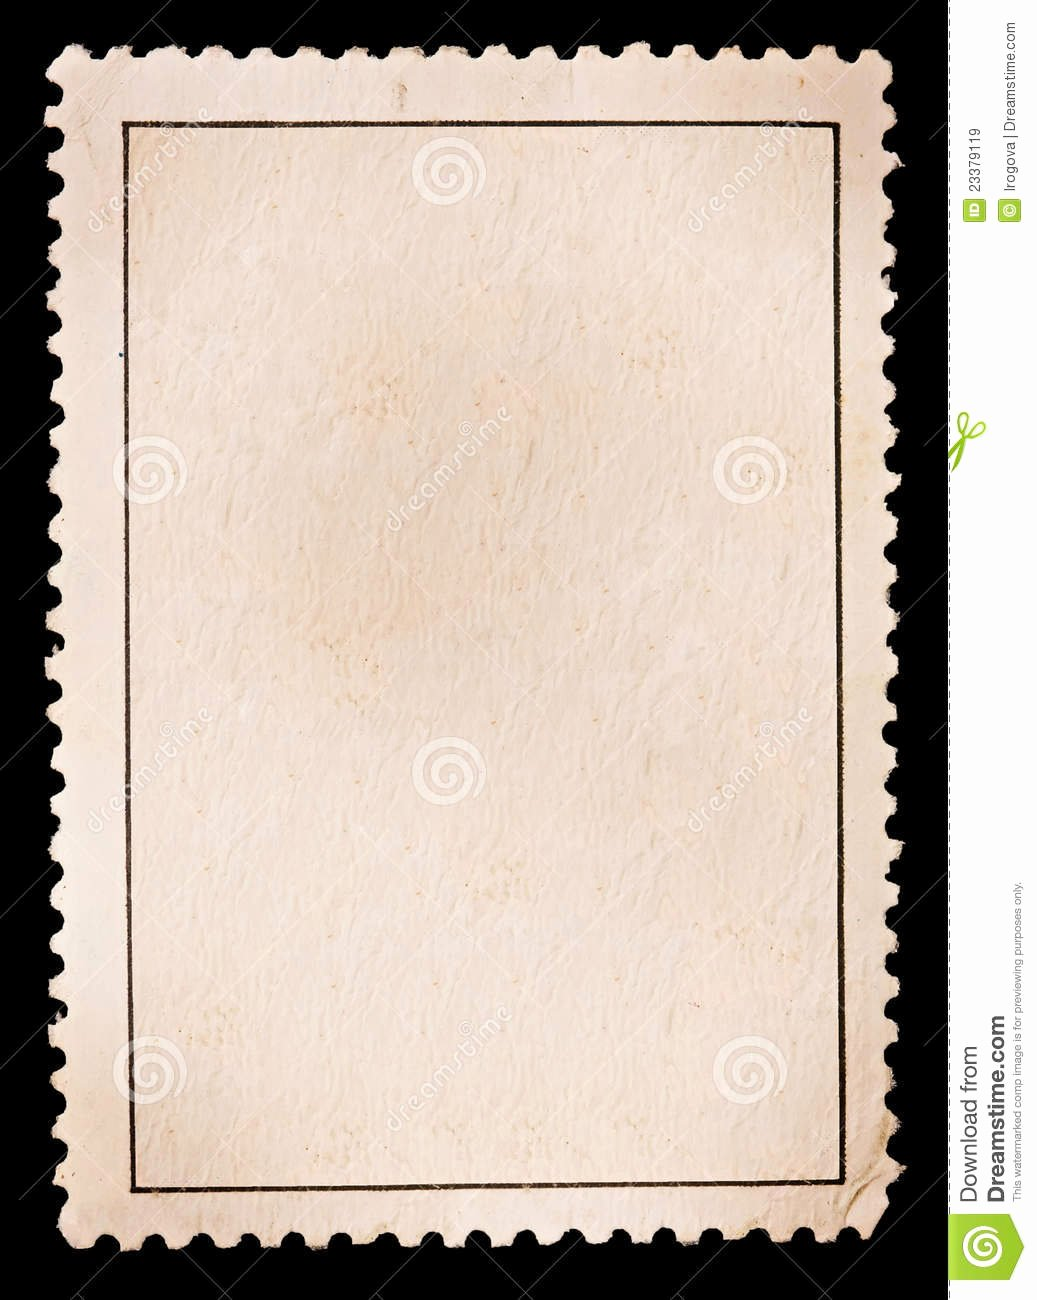 Blank Stamp Template Inspirational Blank Stamp Stock Image Image Of In Plete Deliver